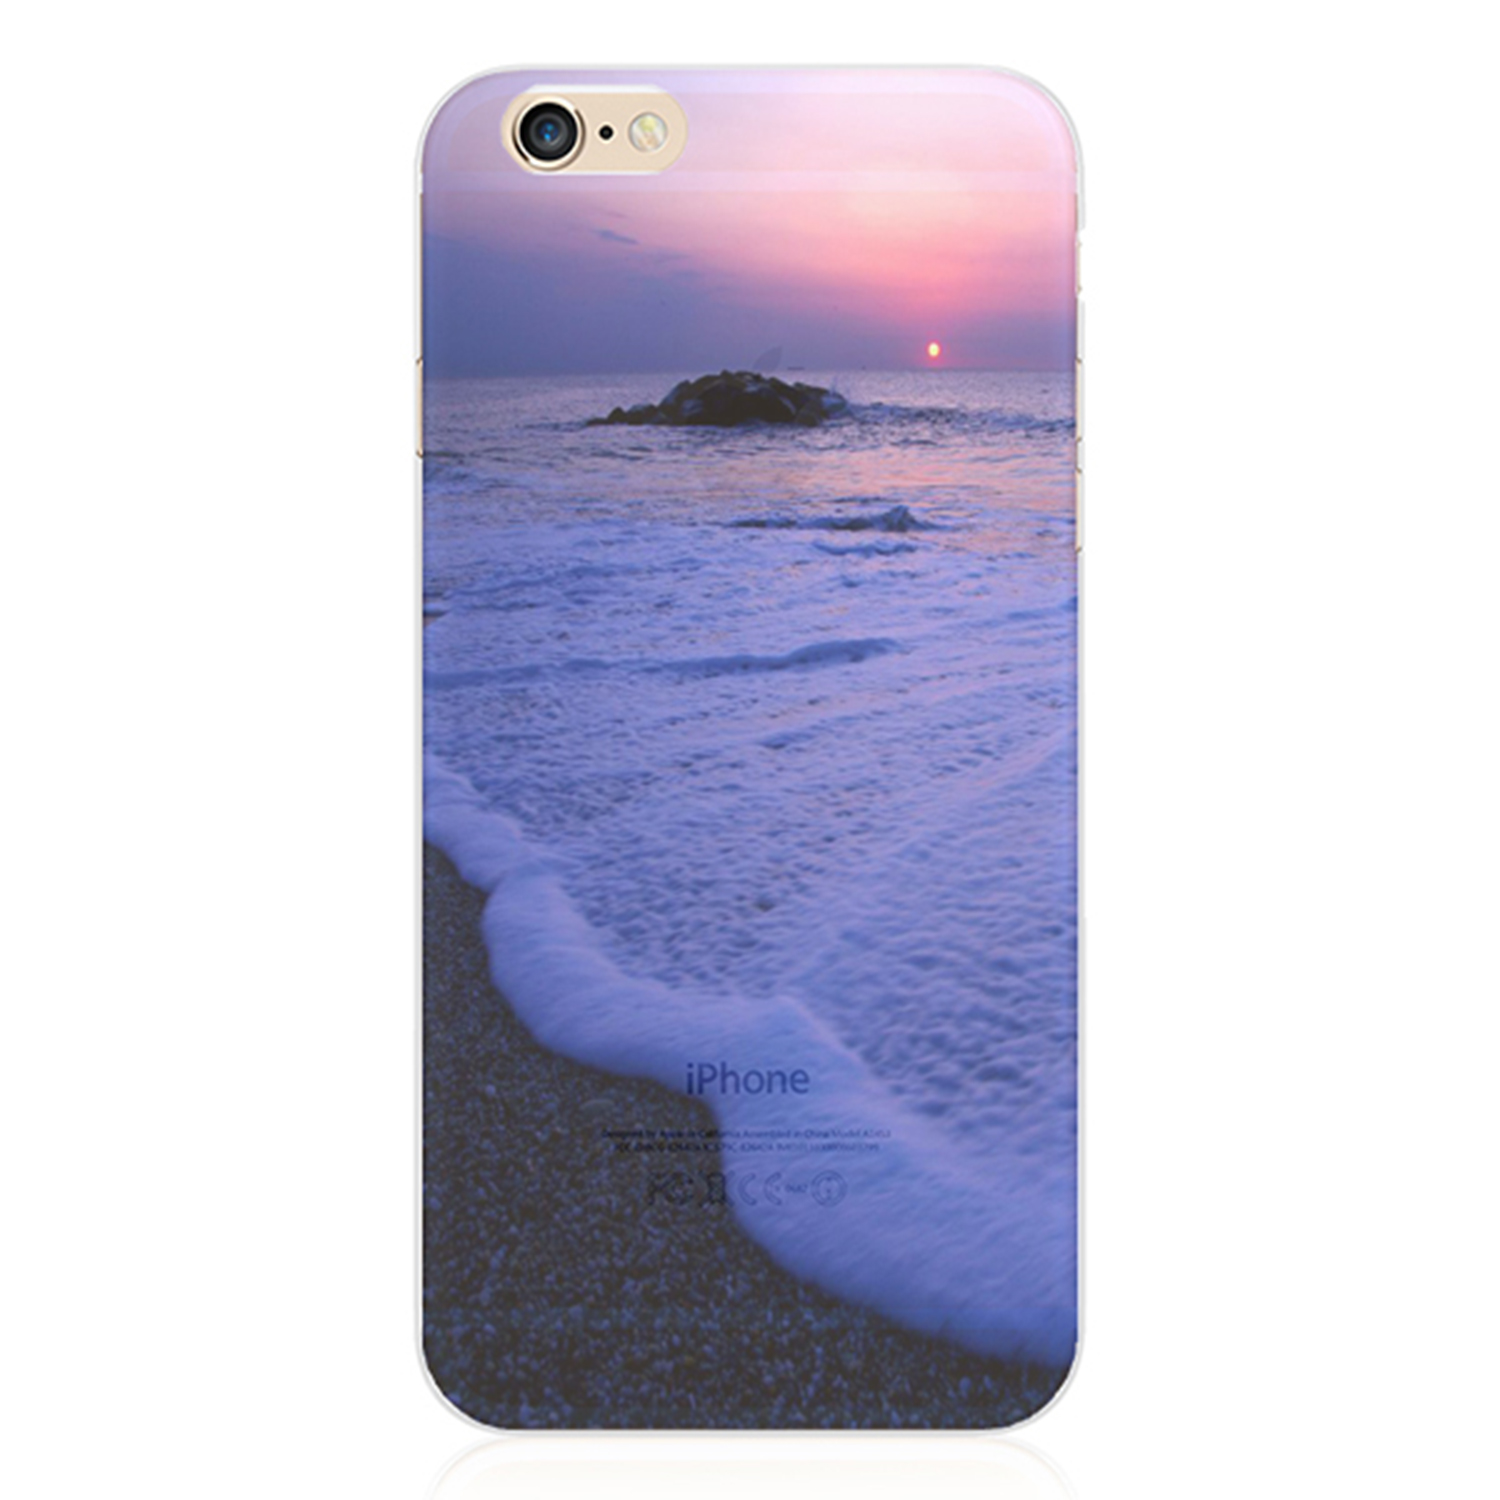 Kritzel Case Nature Collection für iPhone 6 / 6s - #299